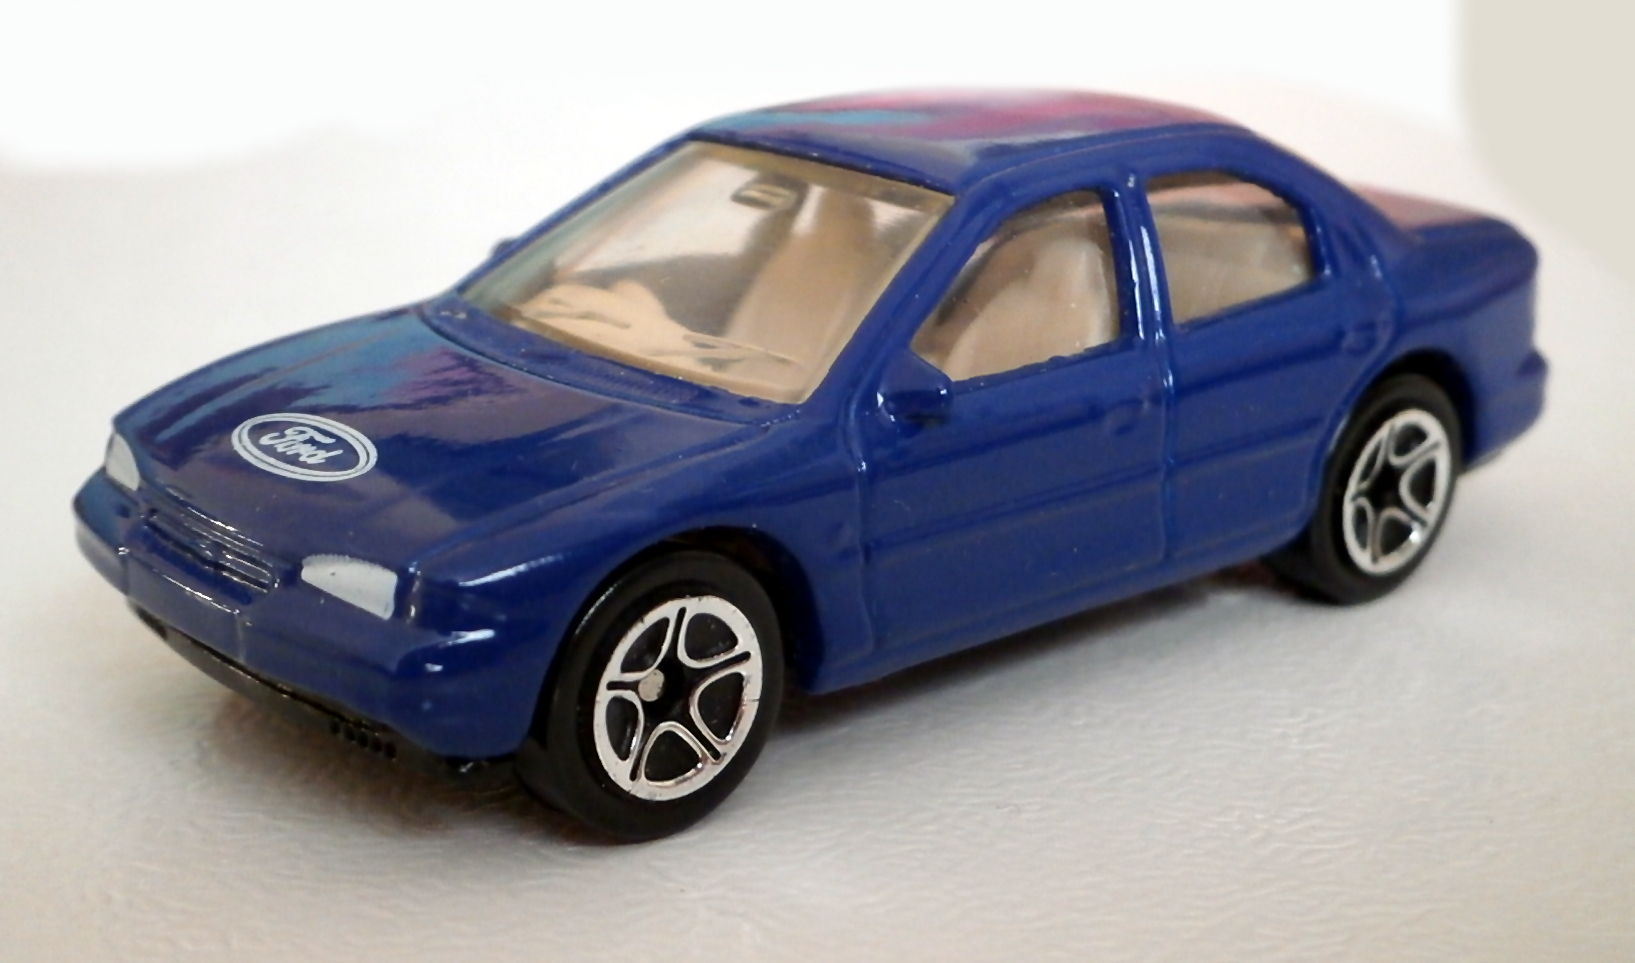 Ford Mondeo Matchbox Cars Wiki Fandom Powered By Wikia